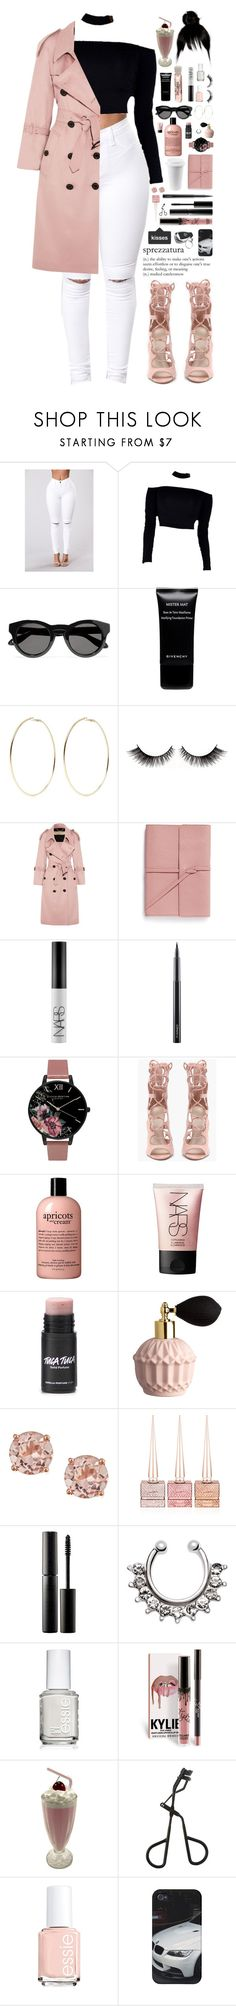 """sprezzatura."" by dyciana ❤ liked on Polyvore featuring Givenchy, Kenneth Jay Lane, Burberry, Bynd Artisan, NARS Cosmetics, MAC Cosmetics, Olivia Burton, ULTA, Christian Louboutin and Surratt"